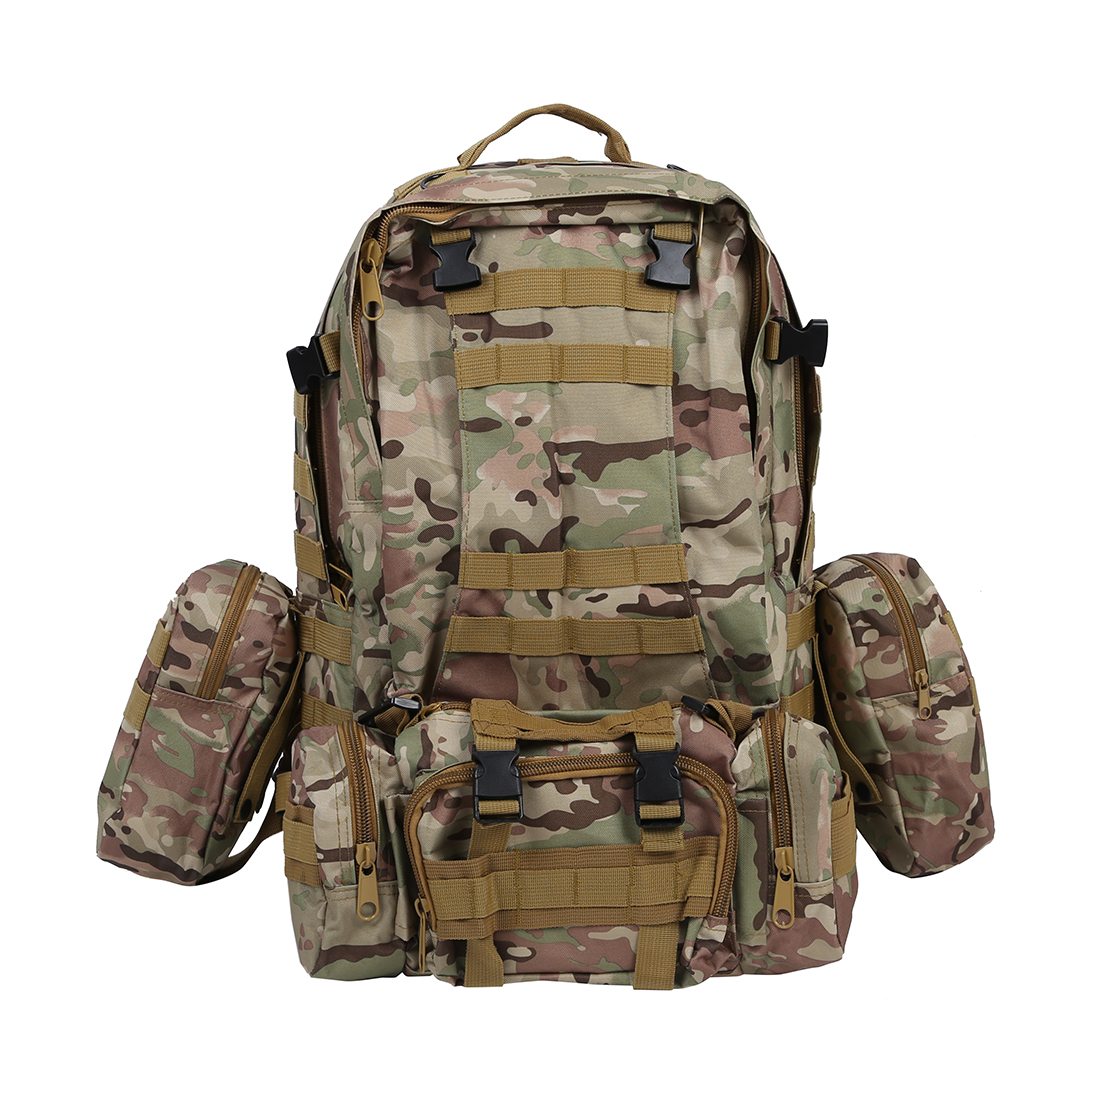 50 L 3 Day Assault Tactical Outdoor Military Rucksacks Backpack Camping bag - CP Camouflage